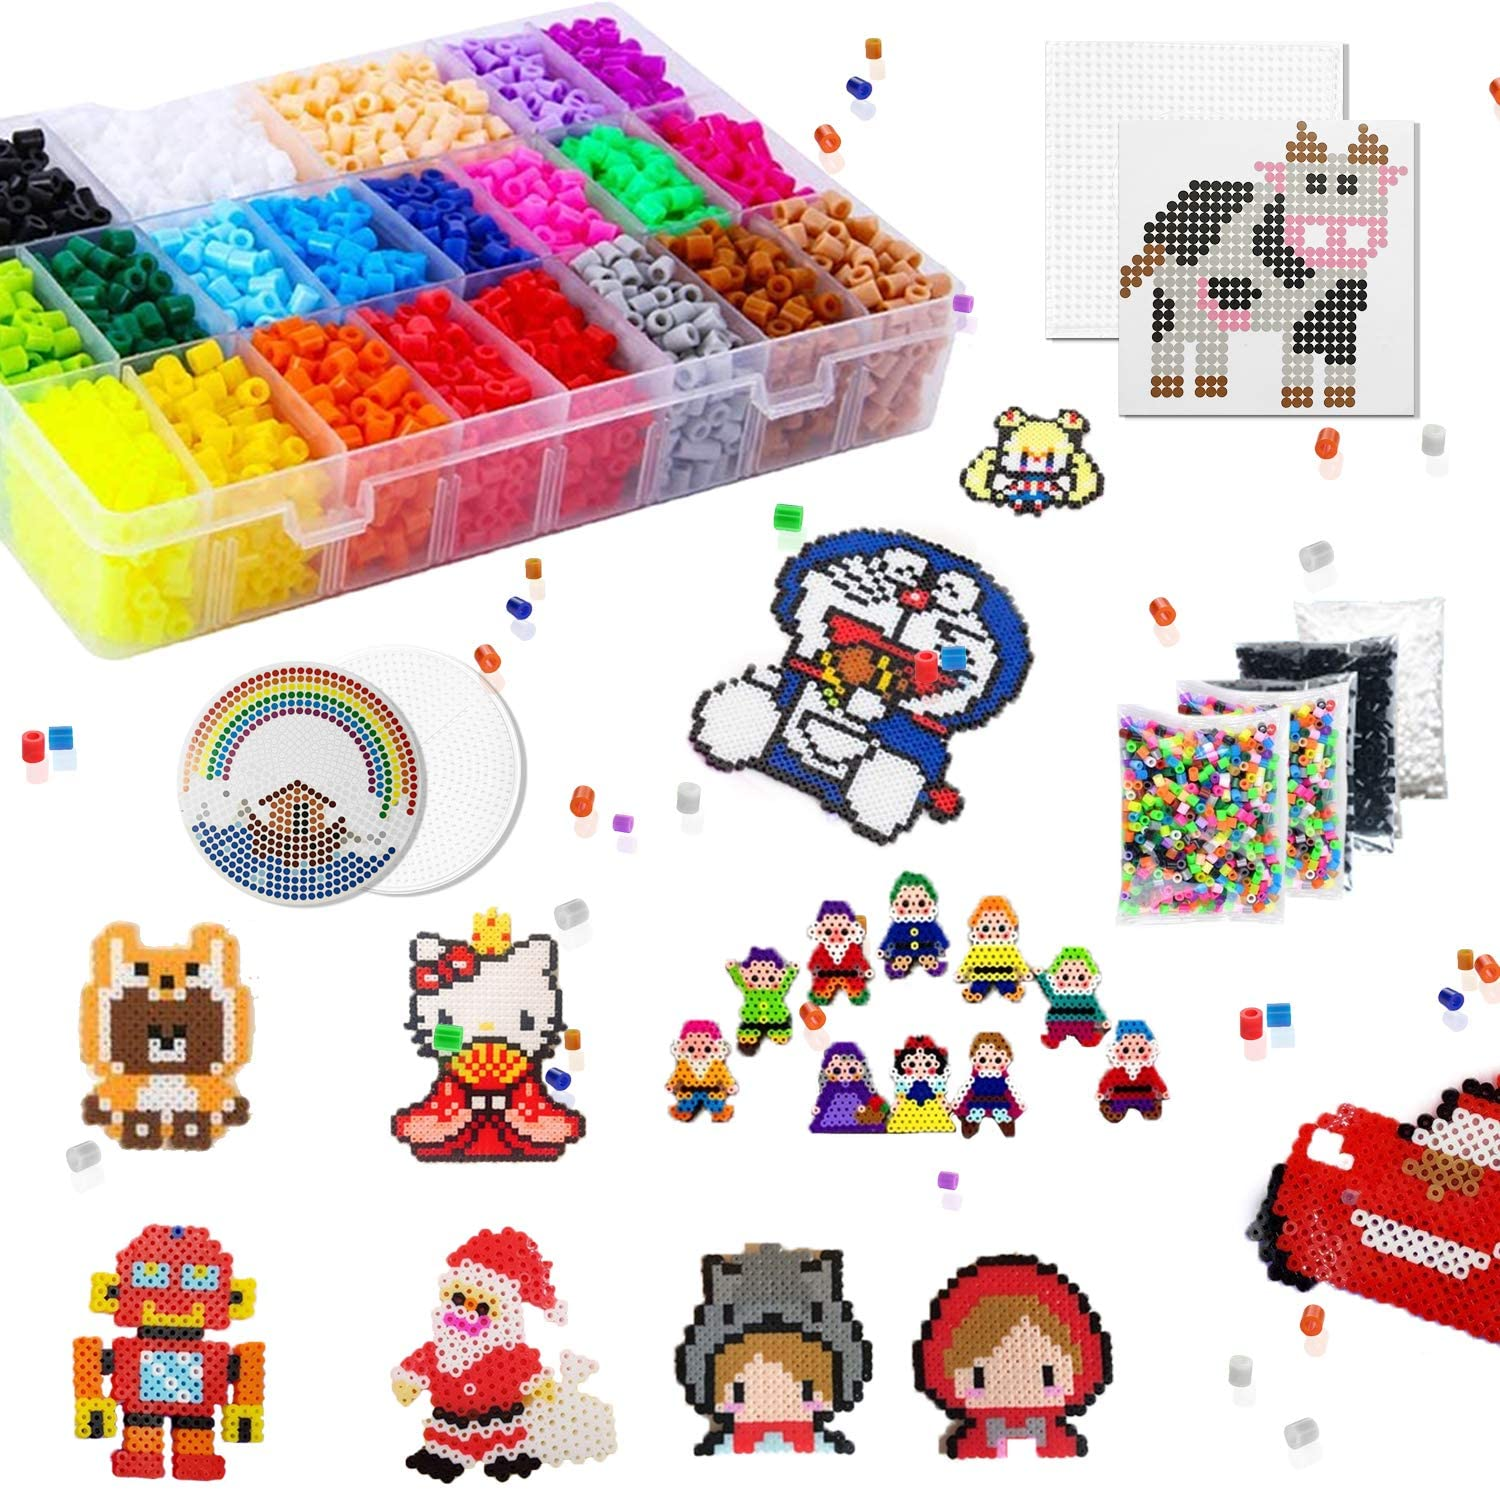 SUNPLAY Fuse Beads Kit, 24 Colors 45+ Patterns 7800 Pcs DIY Fuse Beads Craft Kit for Kids,5mm Bead with Pegboards and Tweezers for Boys Girls Age 4 5 6 7 8 9 Crafting Activity Gift Toy